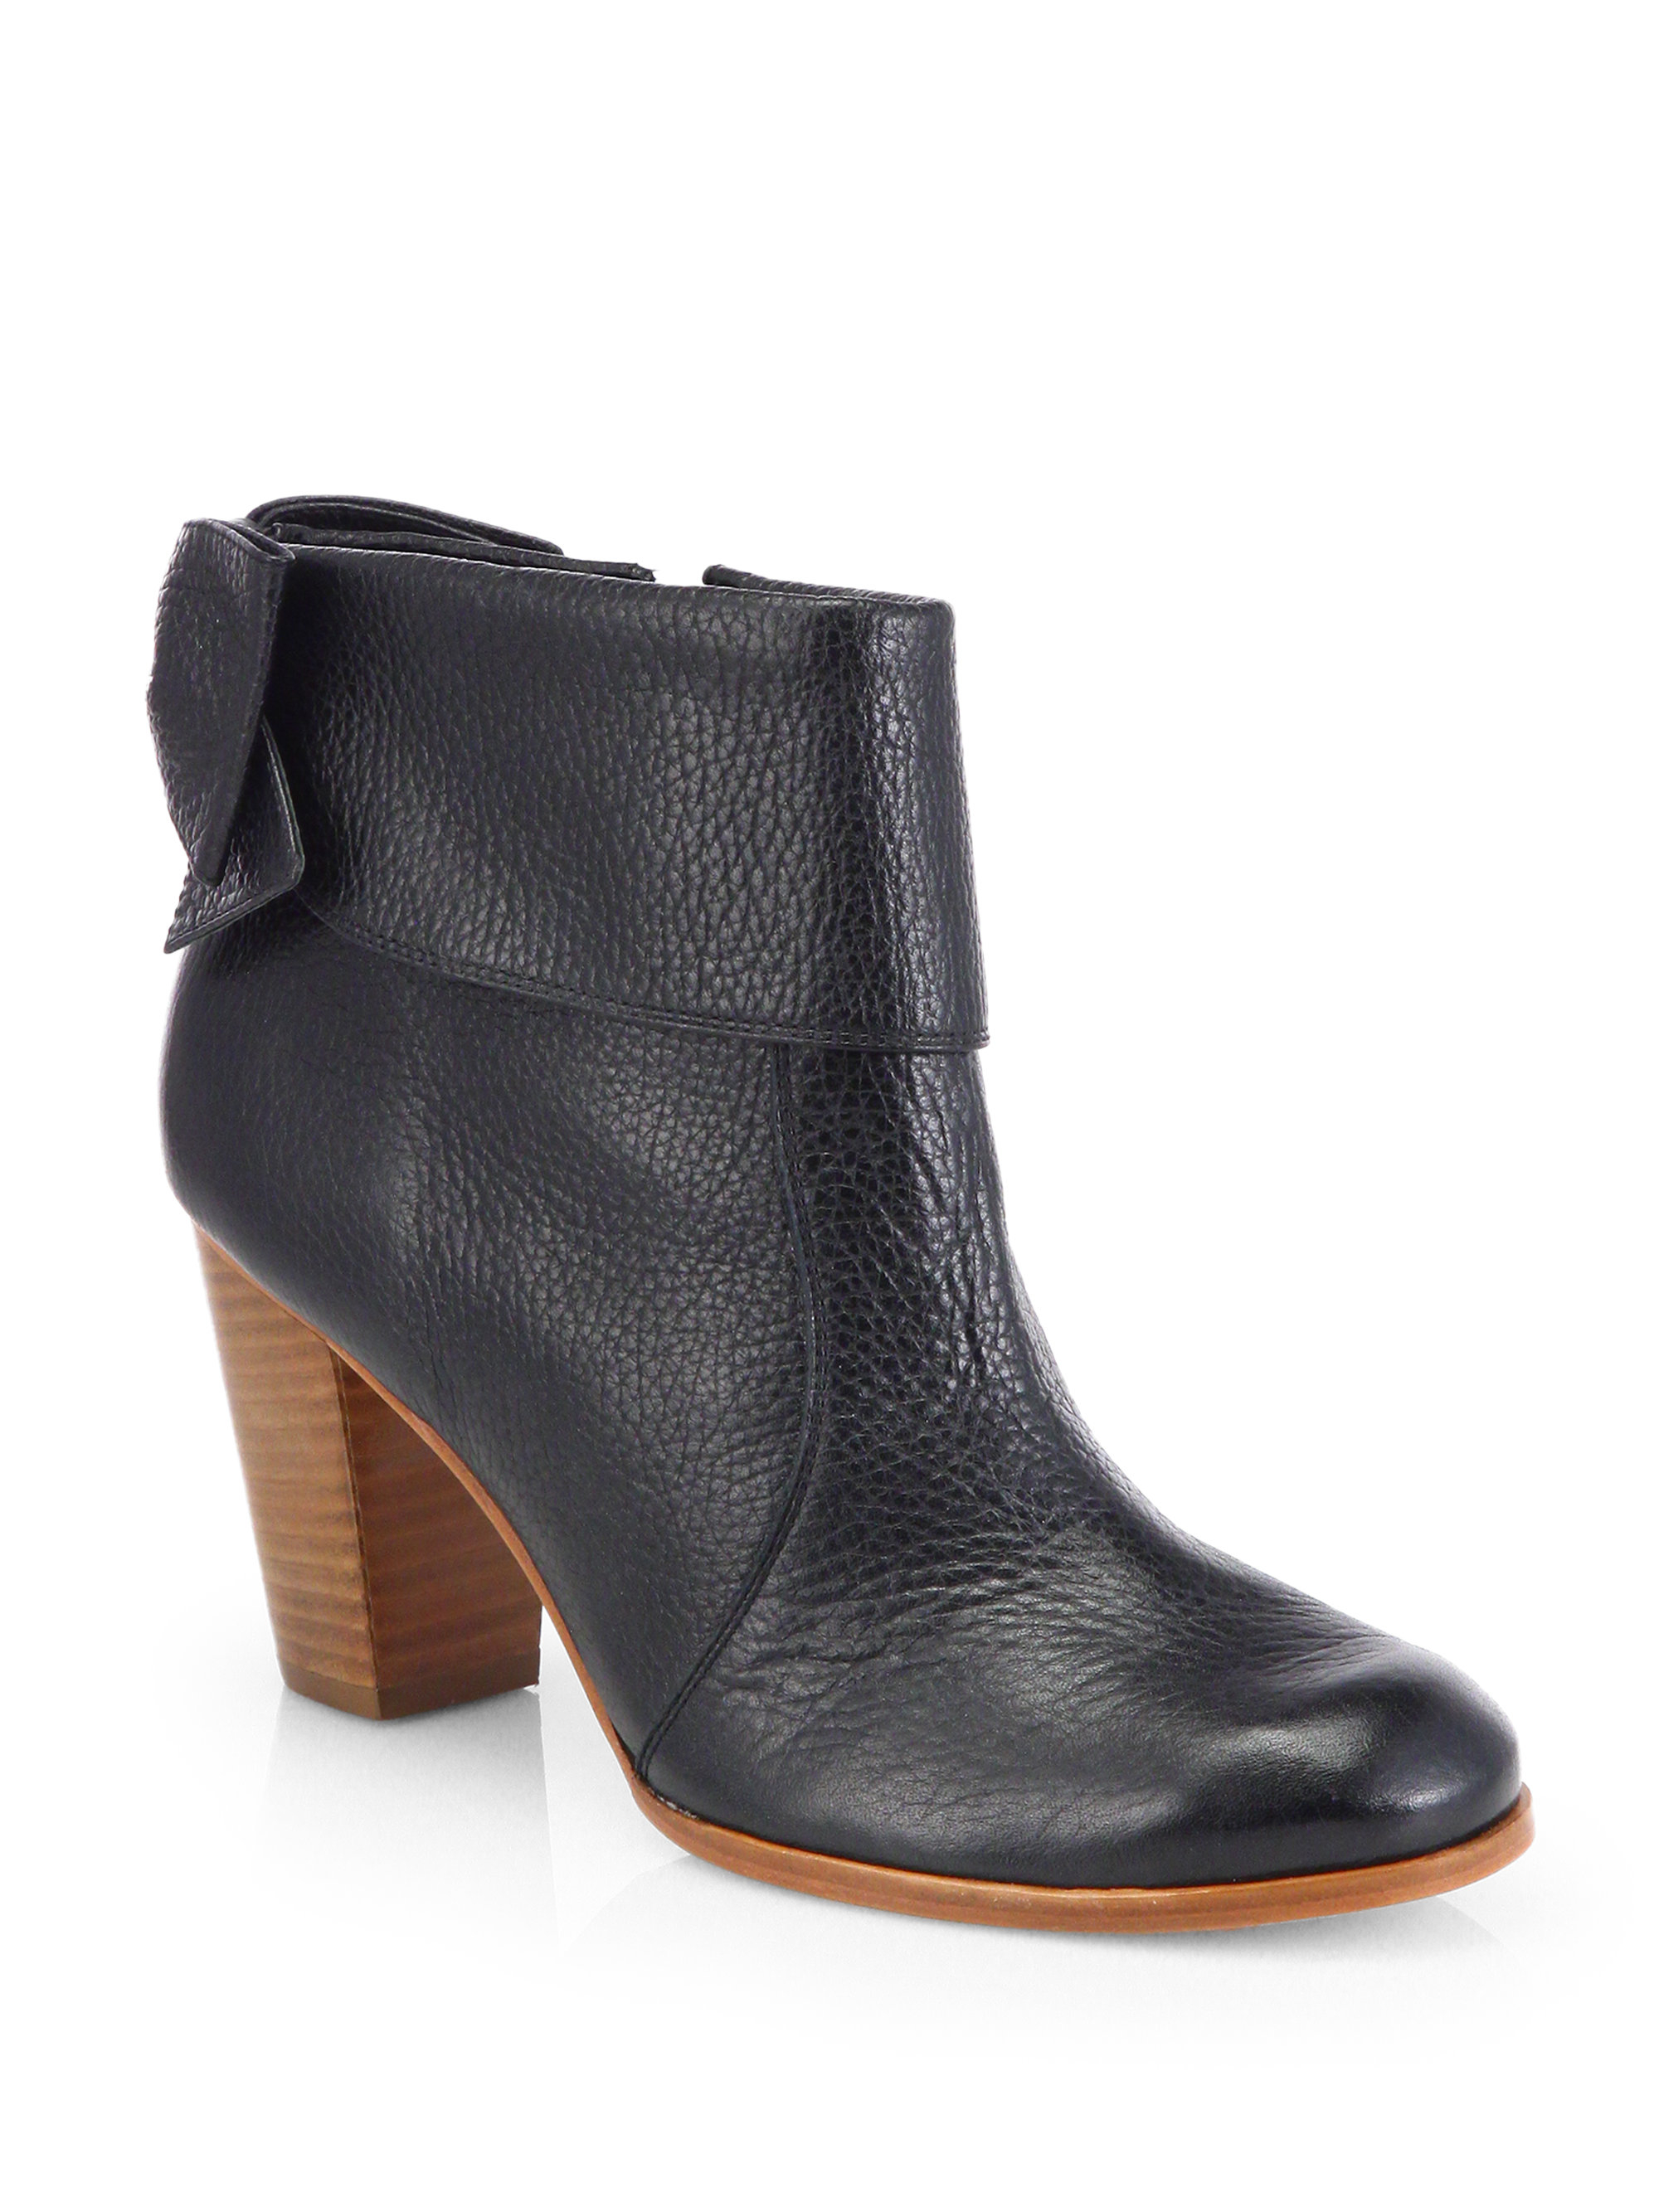 kate spade lanise bow leather ankle boots in black lyst